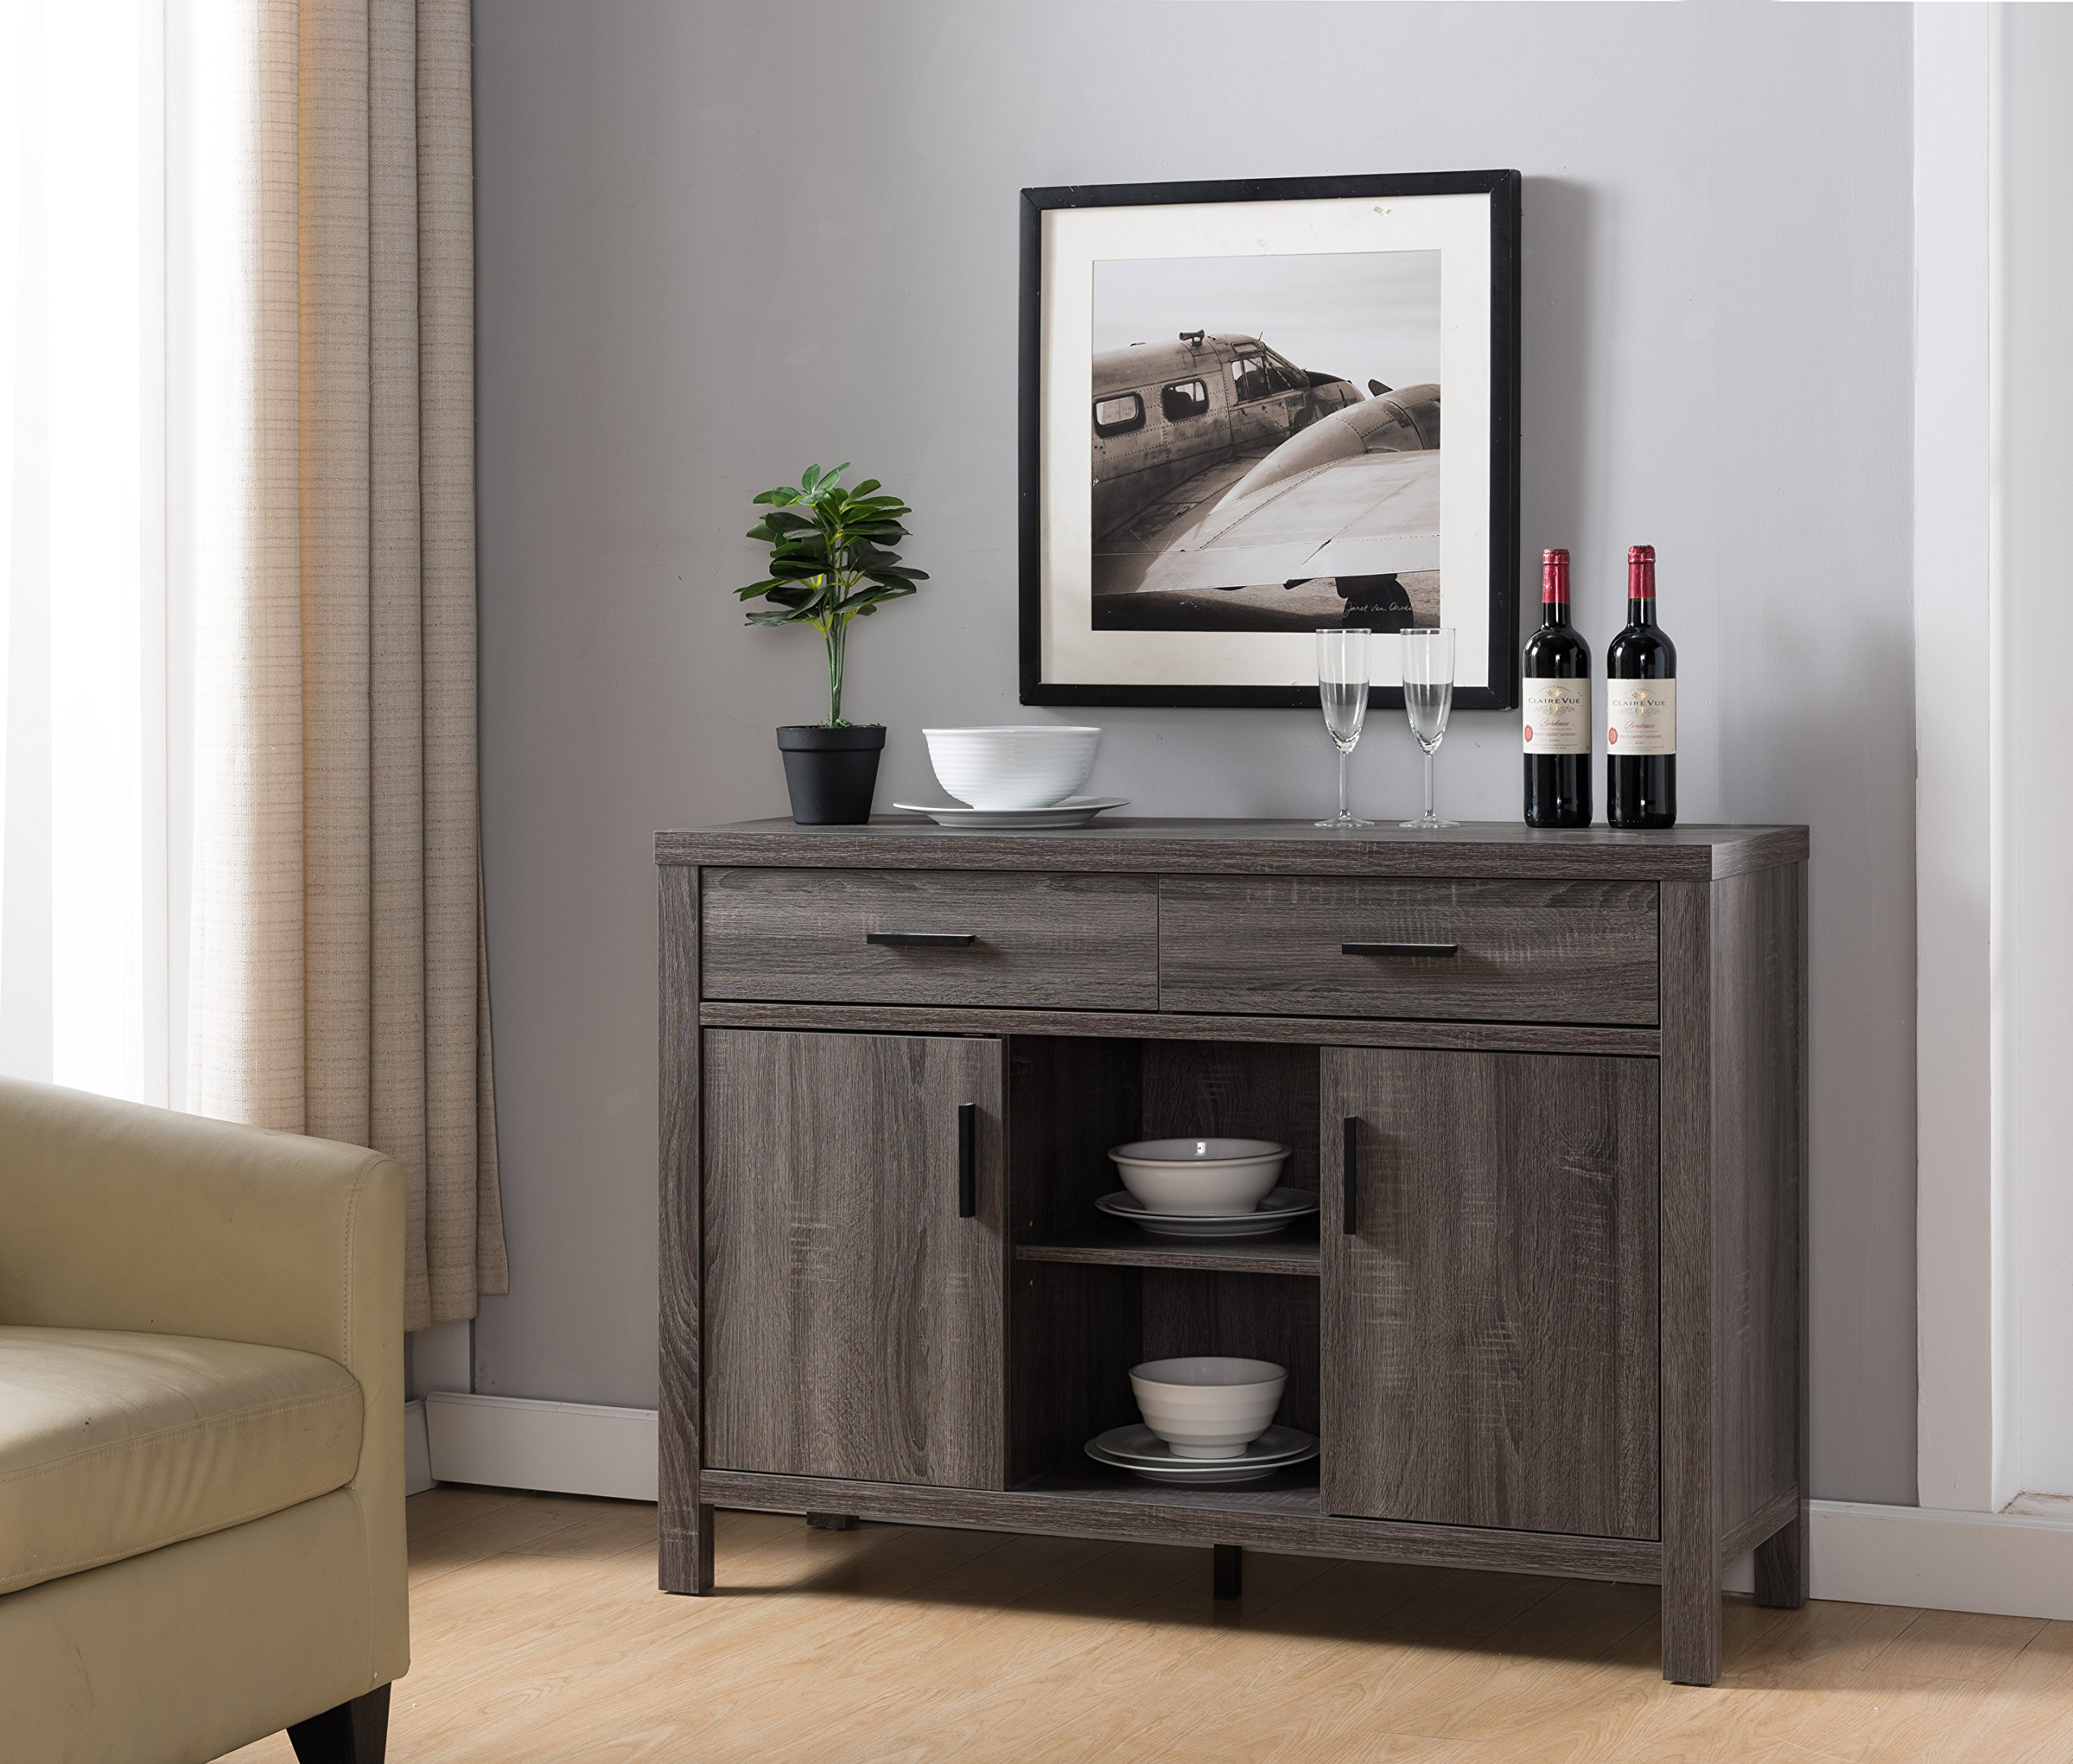 Modern Buffet Fine Dining Serving Table Stand Furniture (Distress Gray)